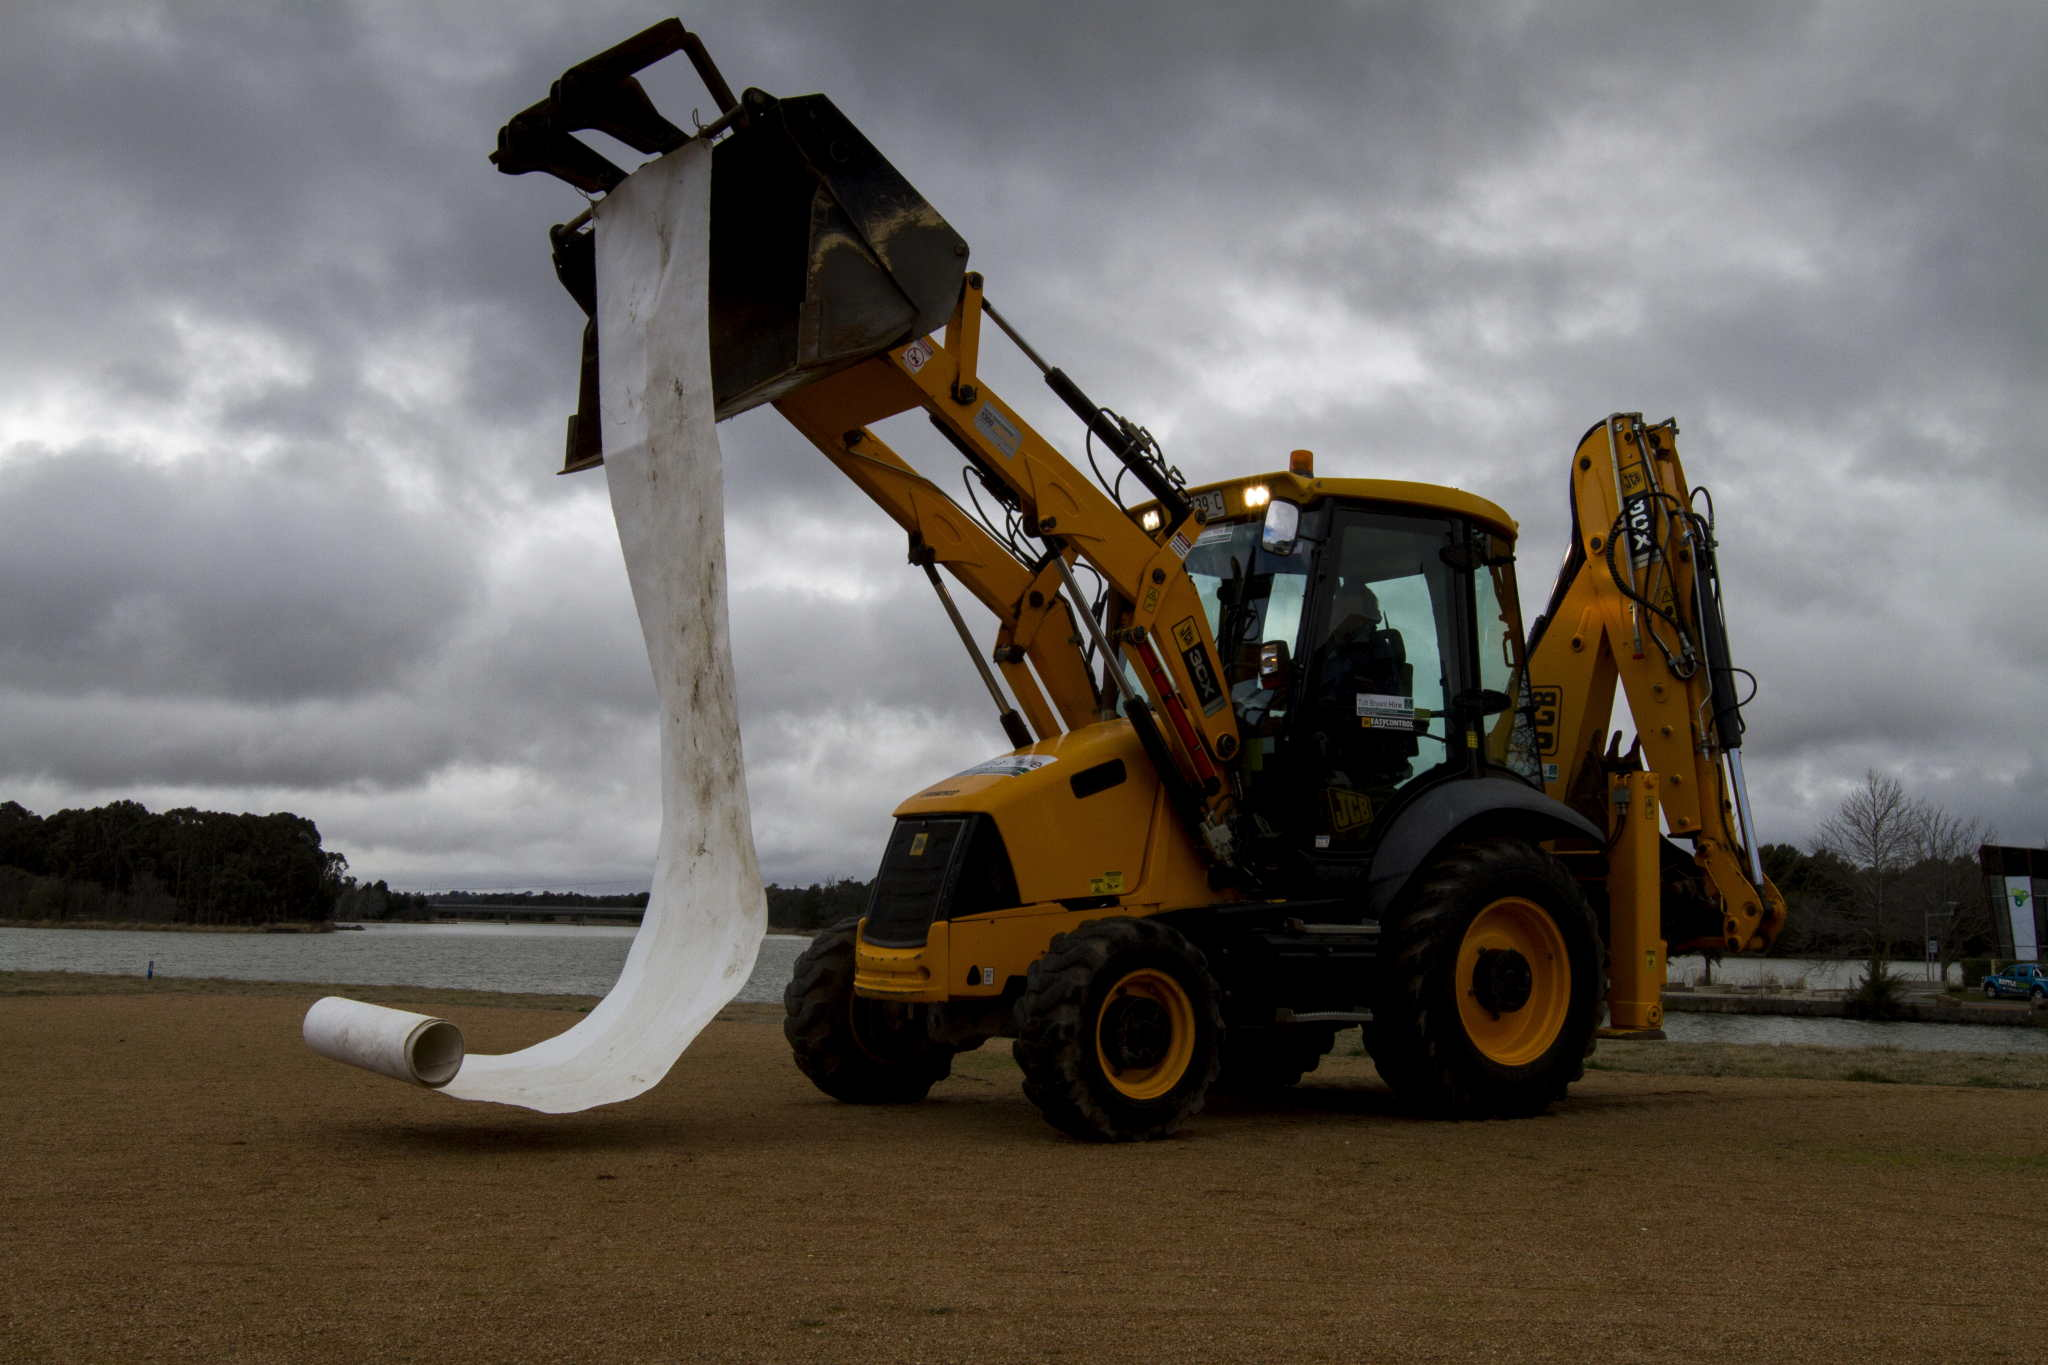 One River 2013: Unravelling the Maranoa. Artist: Jude Roberts.